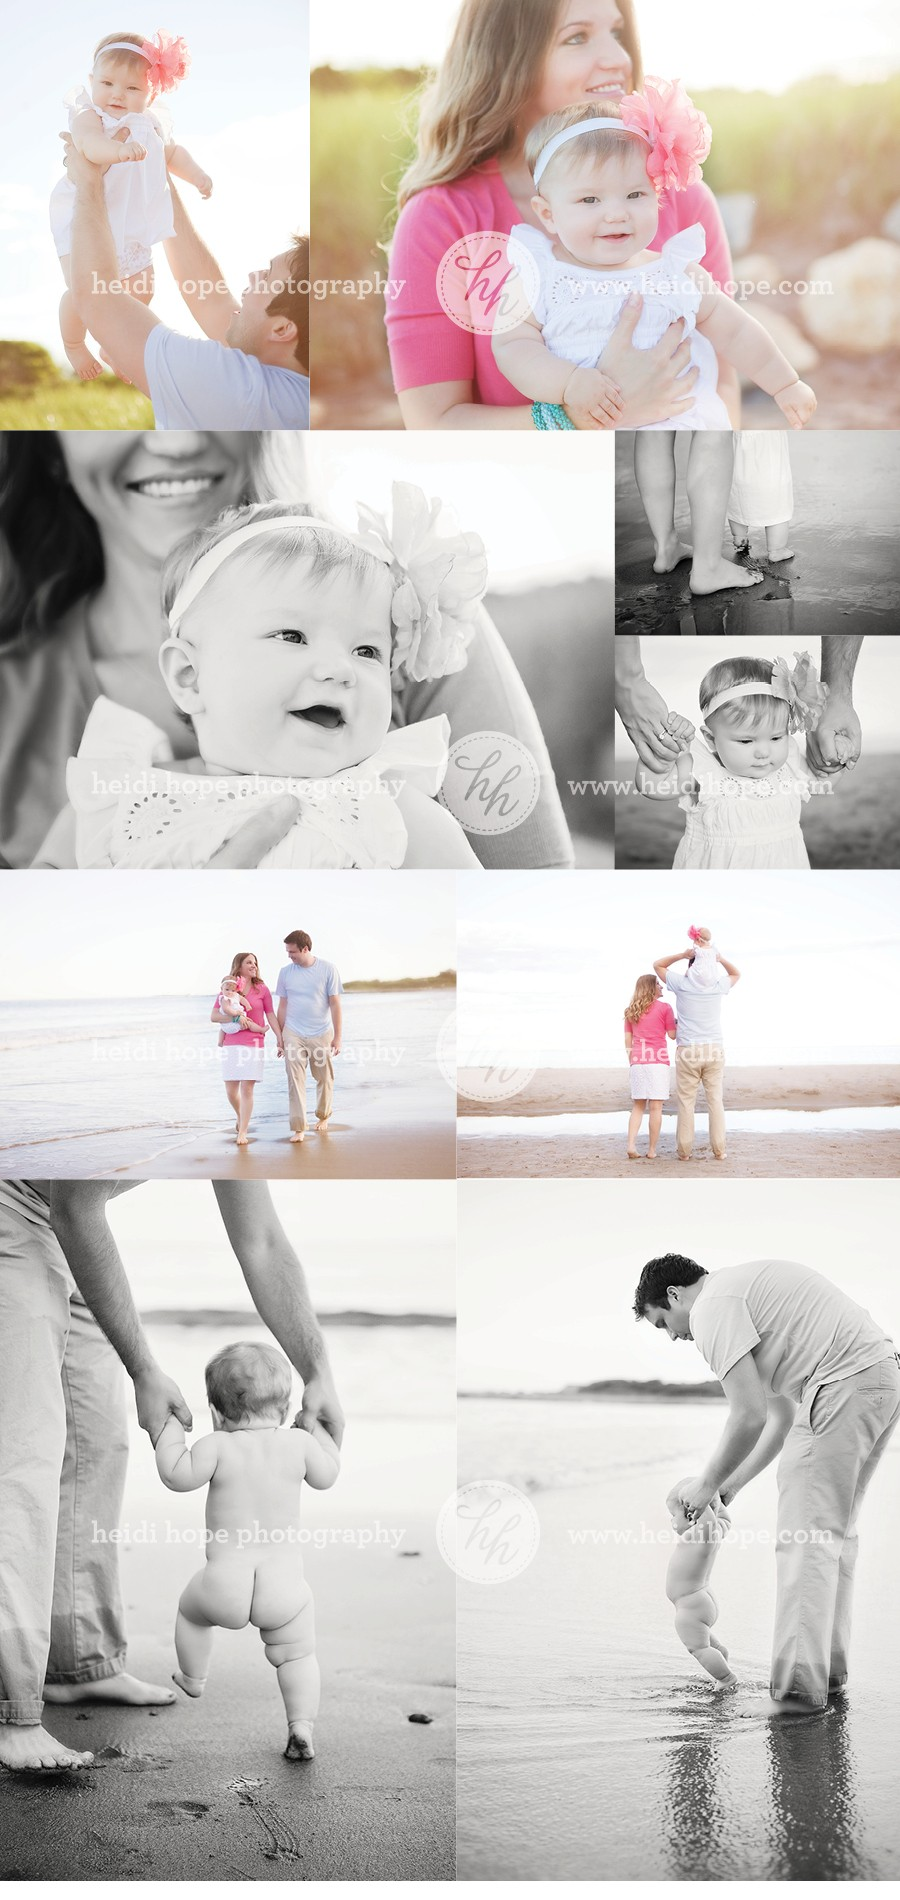 Family Beach Photoshoot at Sunset by Heidi Hope Photography